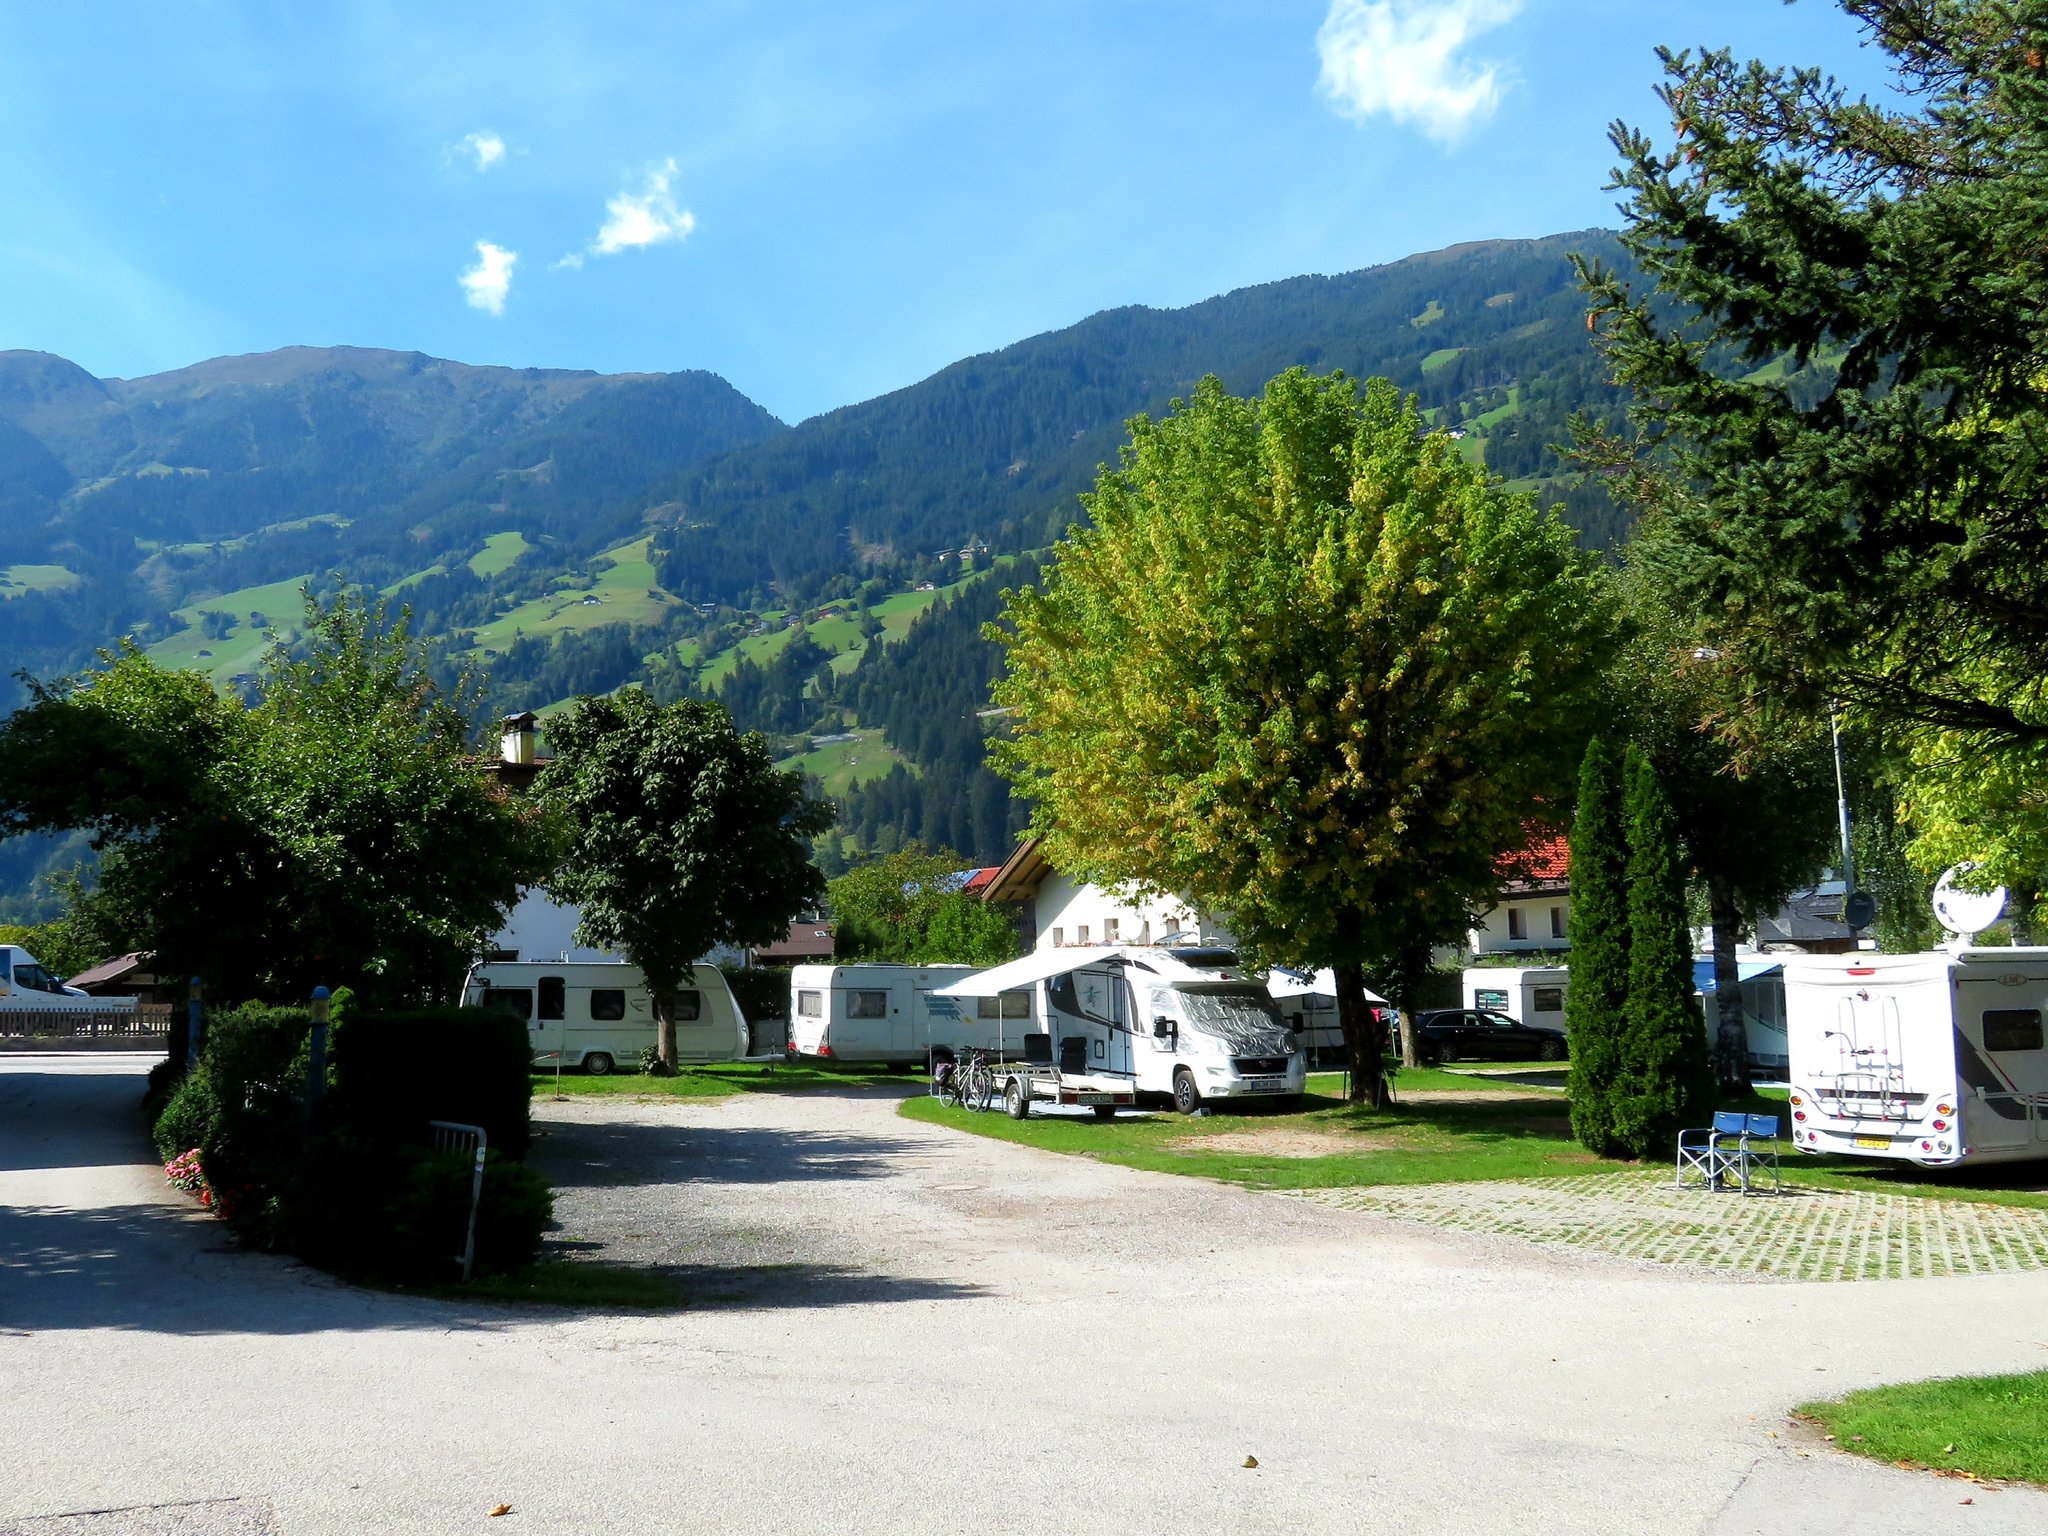 Campingdorf-hofer, Zell-am-Ziller, Switzerland